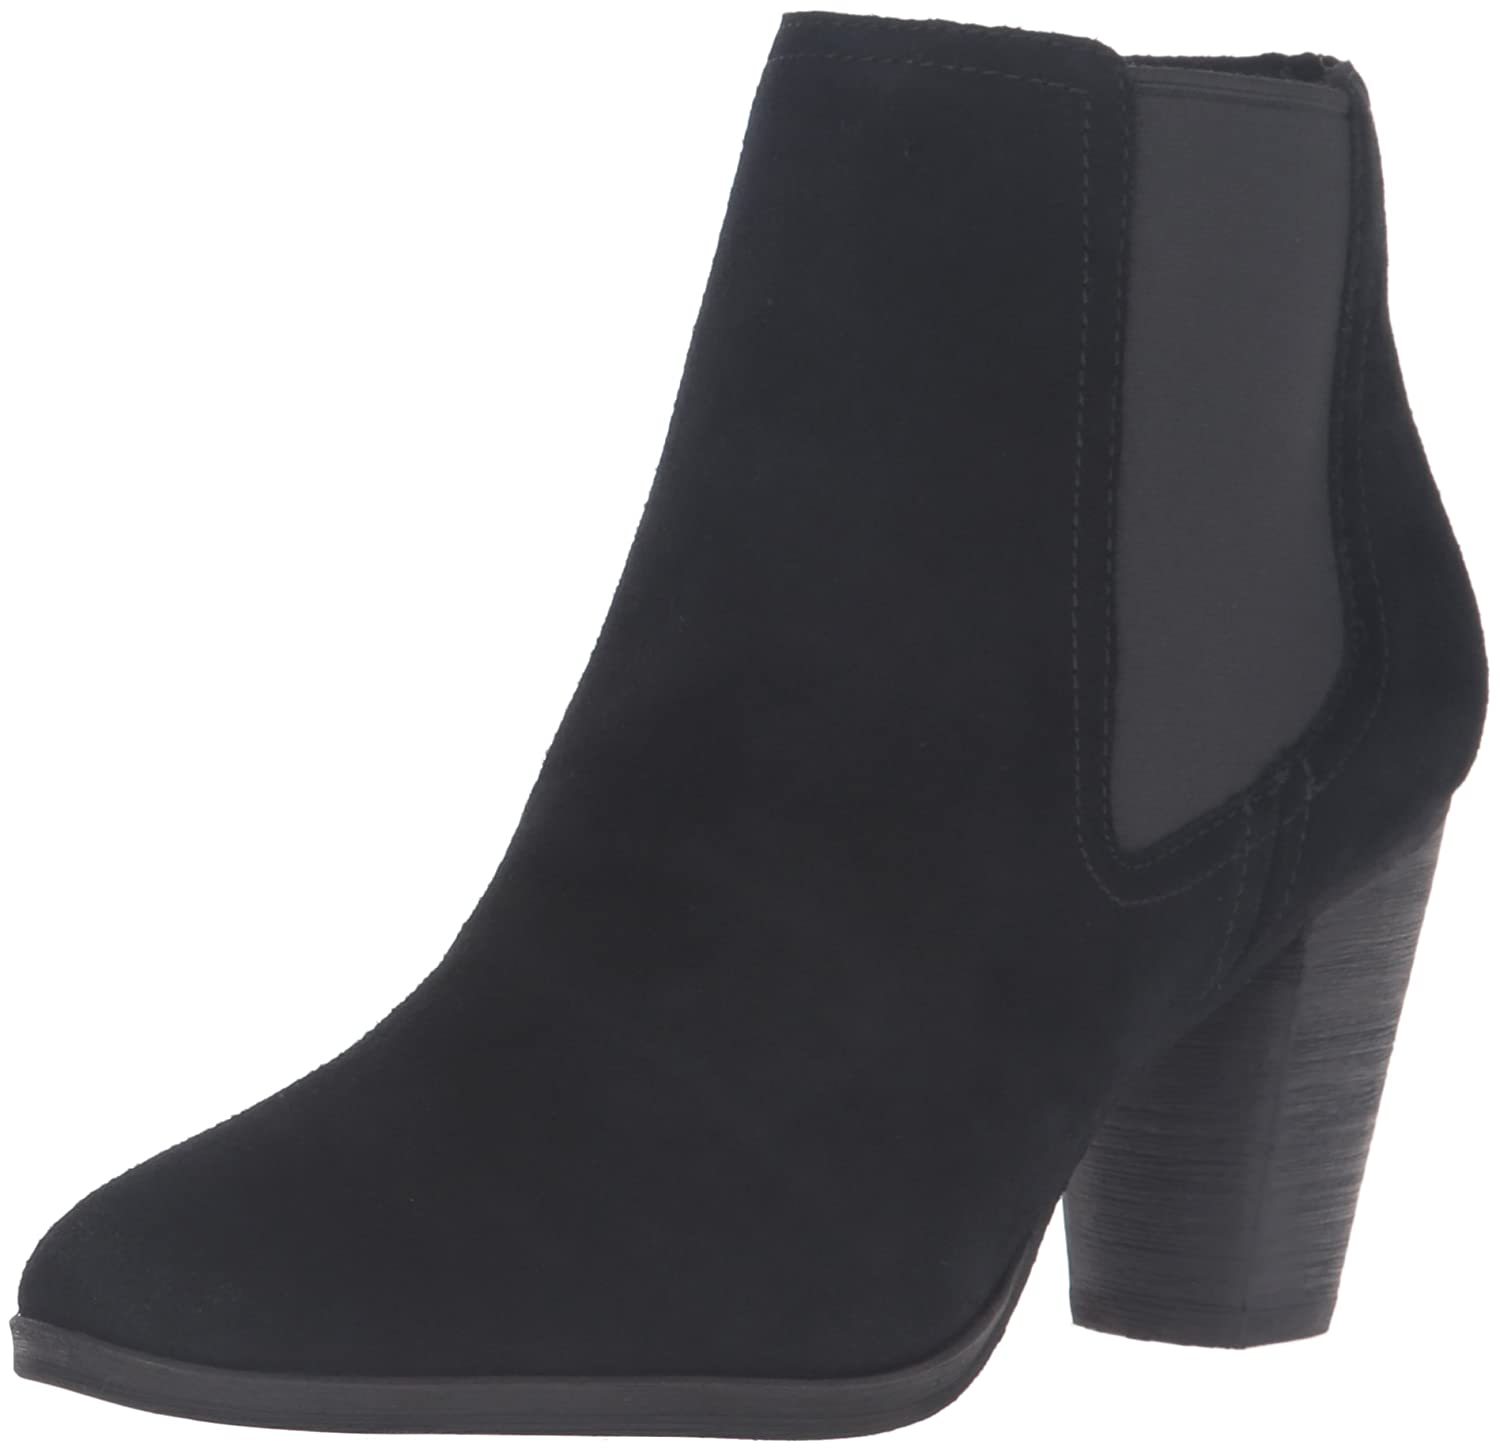 Cole Haan Women's Hayes Gore Ankle Bootie B01FX58SAU 7.5 B(M) US|Black Suede